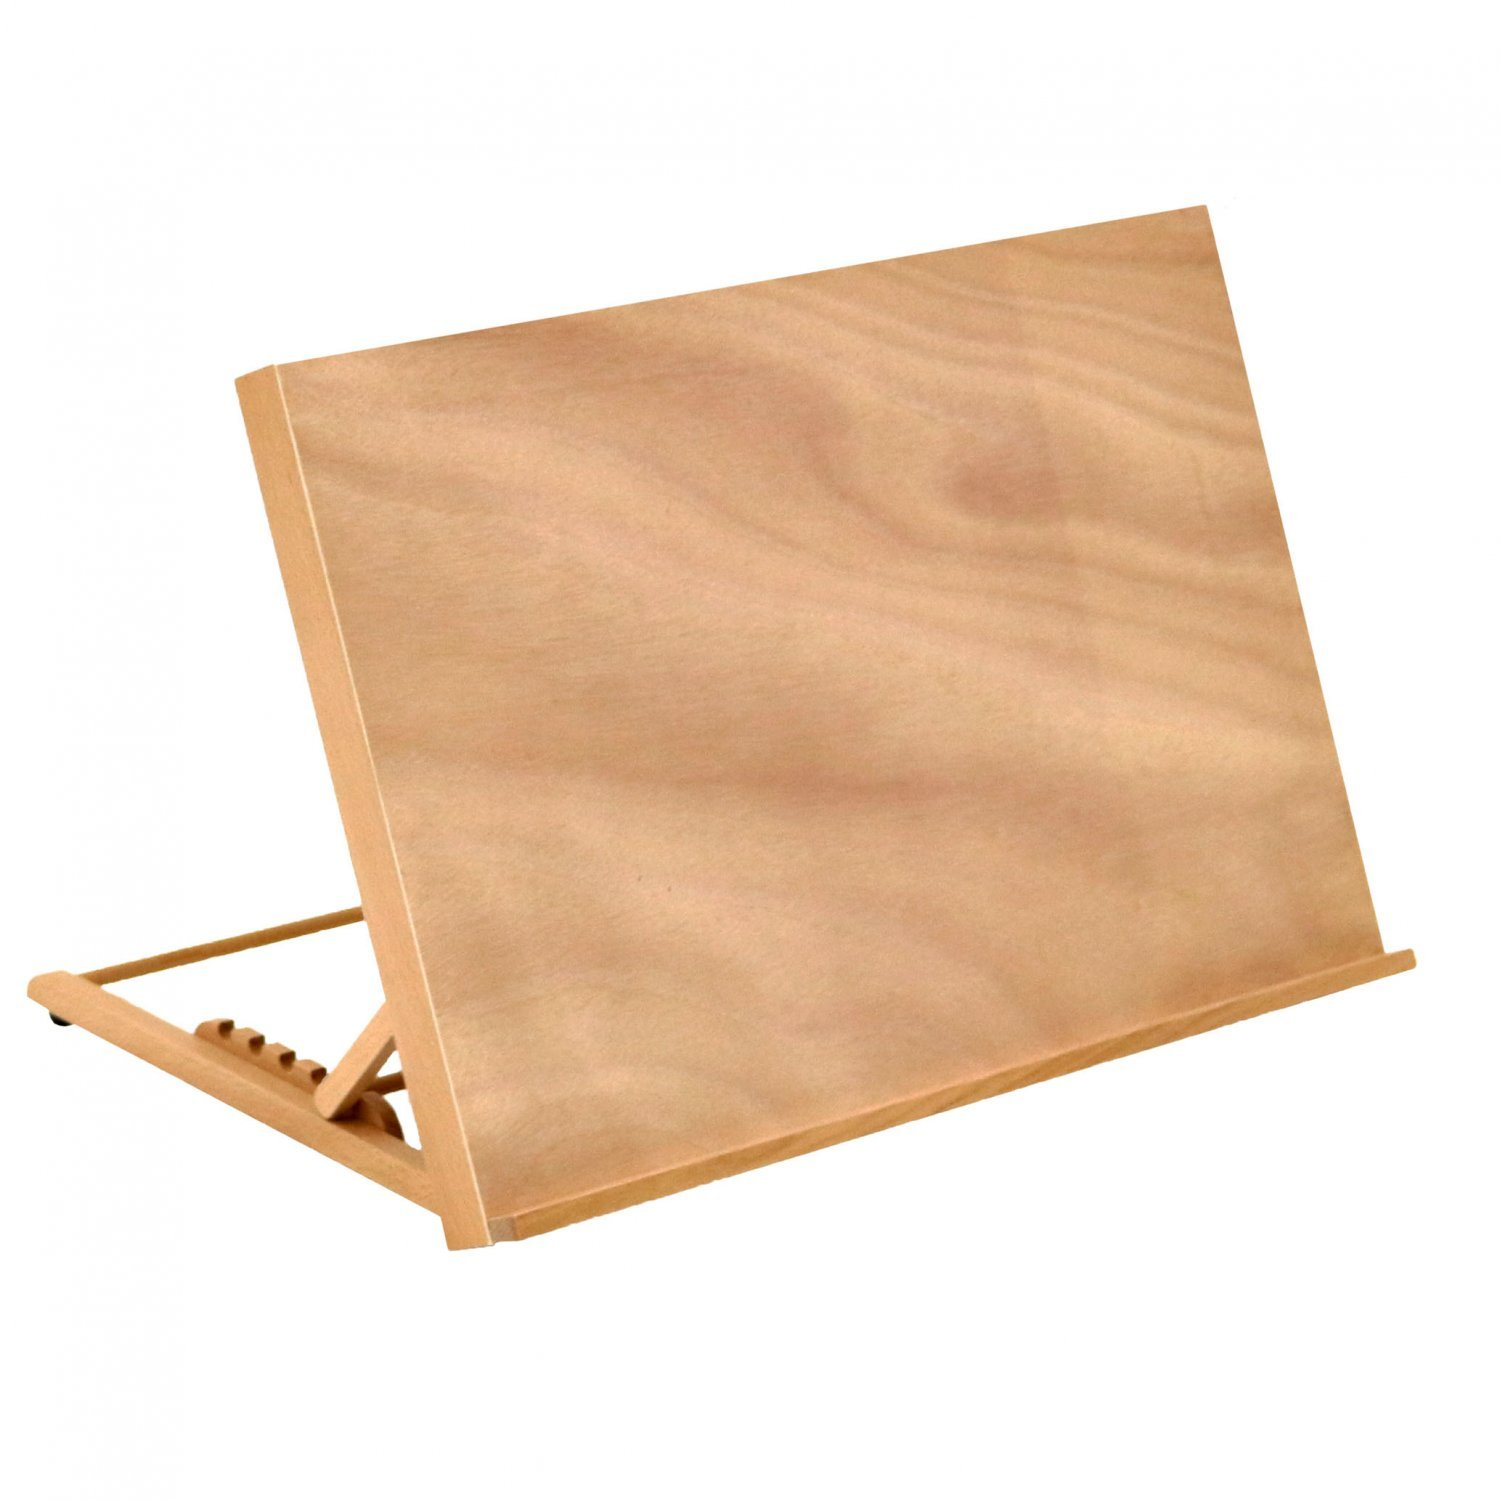 NEW! A2 Wooden Art Drawing Board Table Canvas Workstation Sketch ...